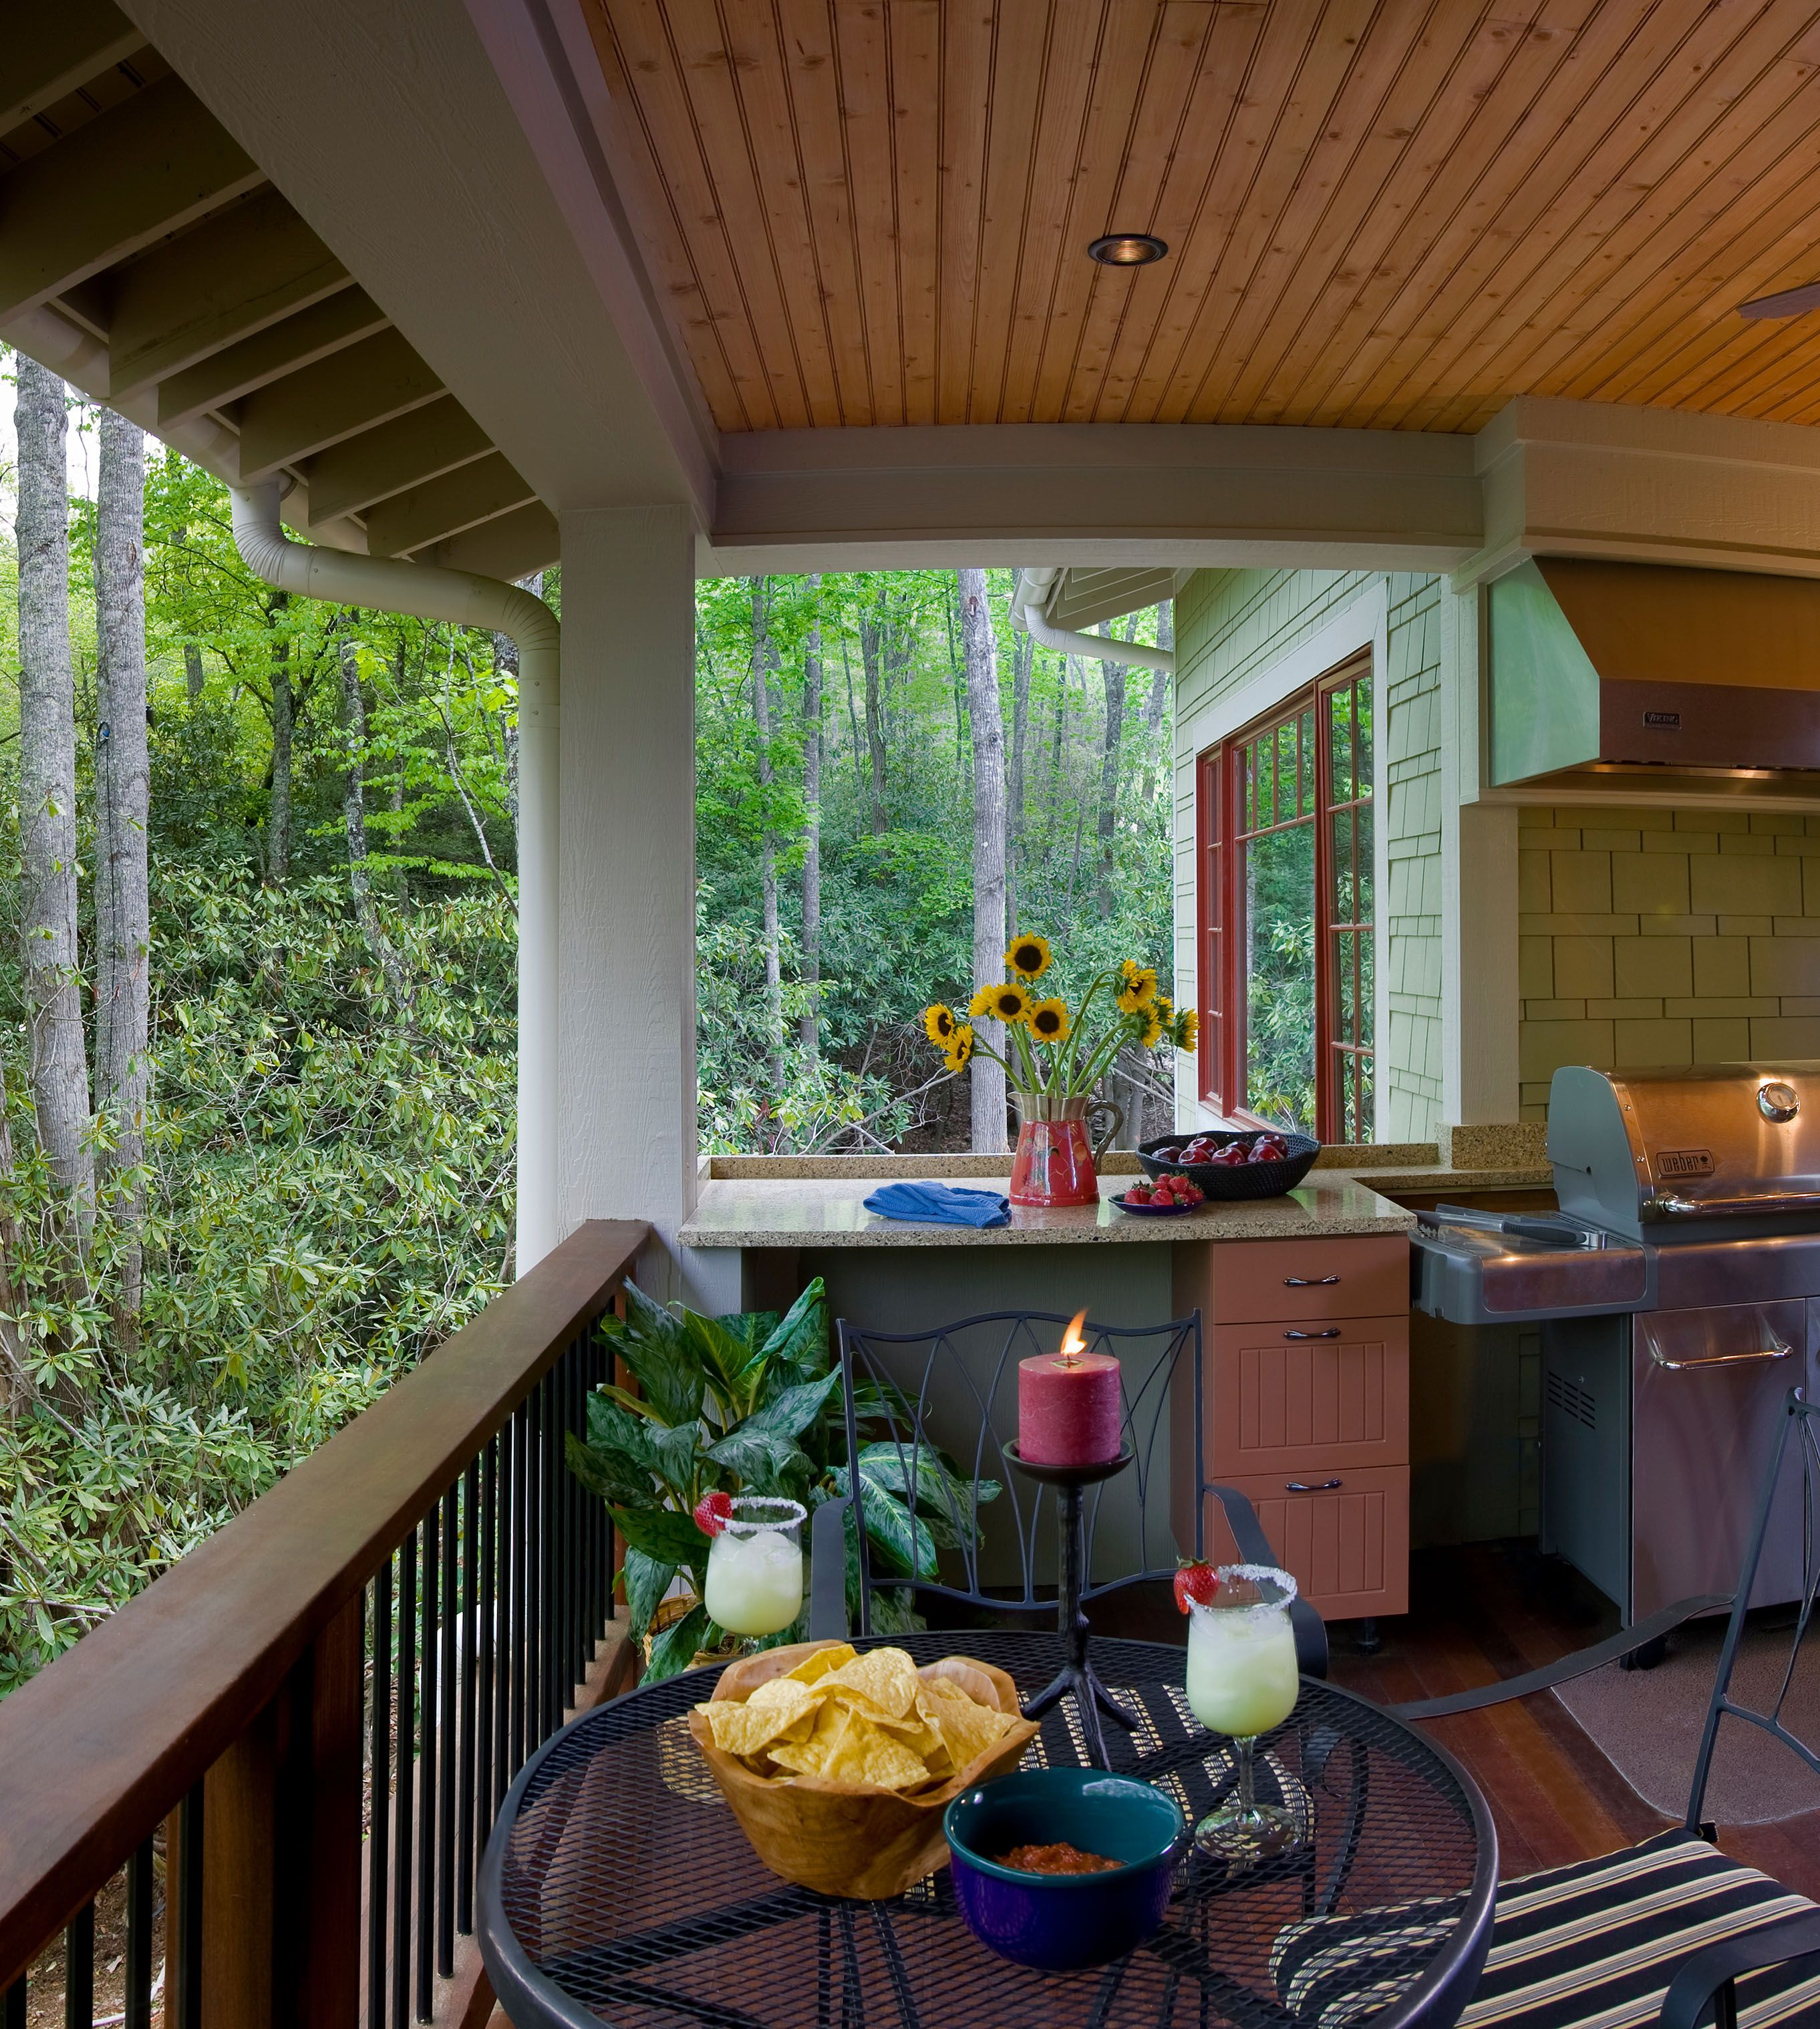 Entertain in Style with Custom Outdoor Kitchens Indoor